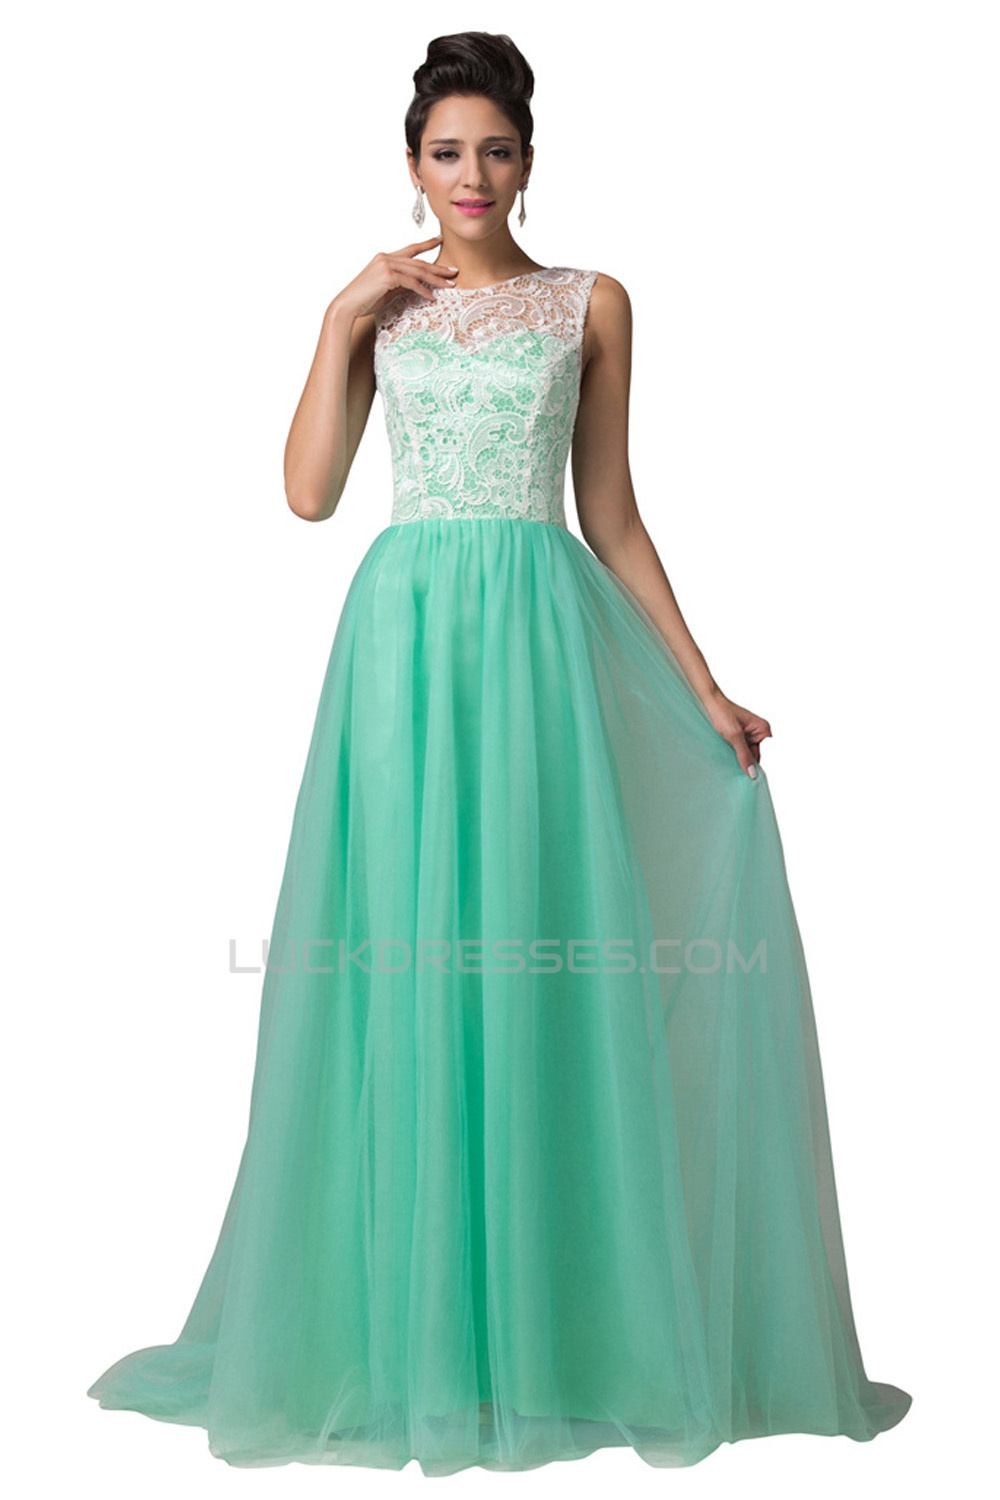 Stunning Prom Dresses Mint Green Gallery - Styles & Ideas 2018 ...